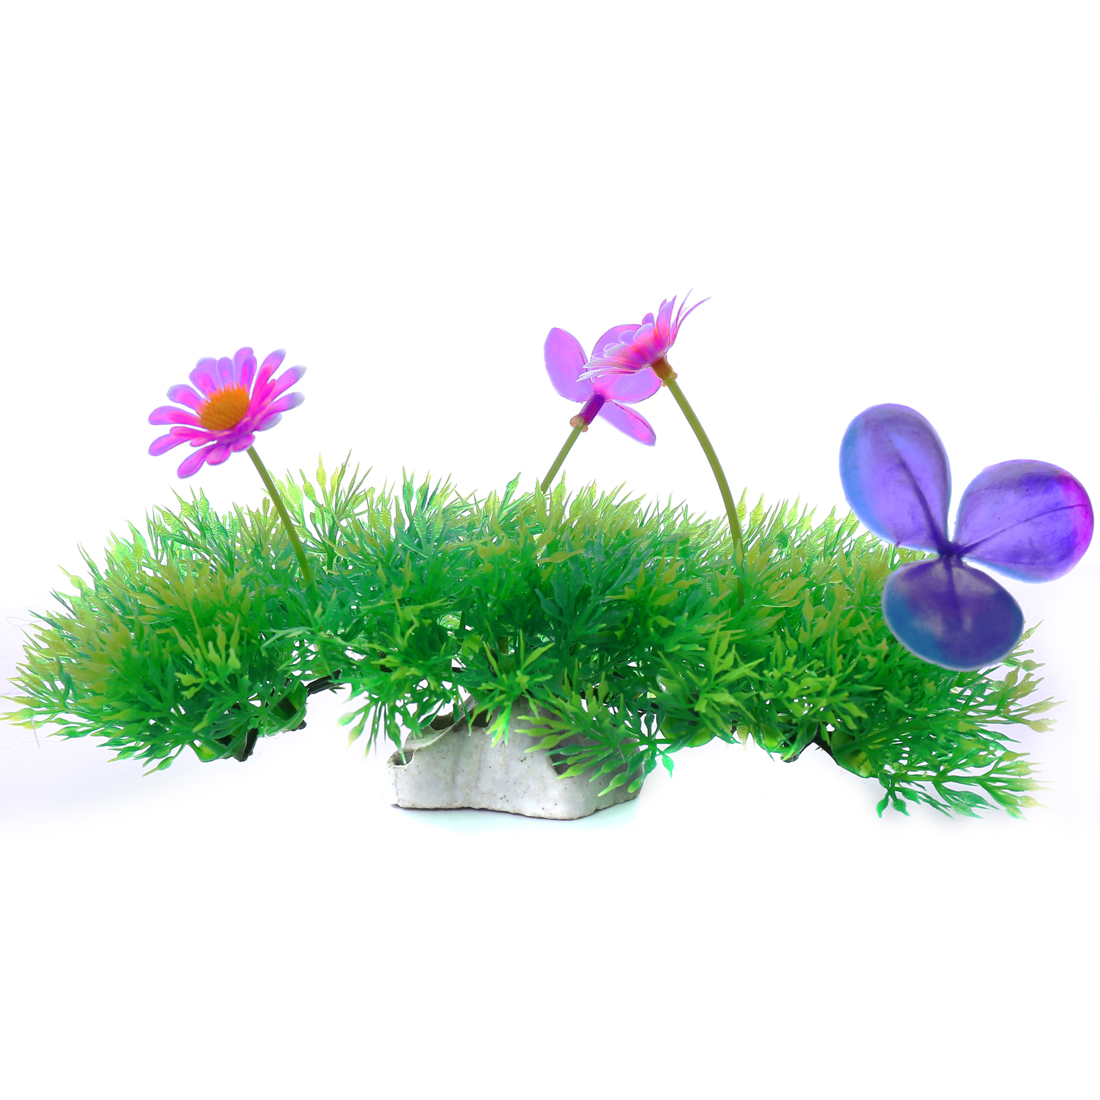 Green Lawn clorful Flower Aquarium Plastic Plants Fish Tank Ornament